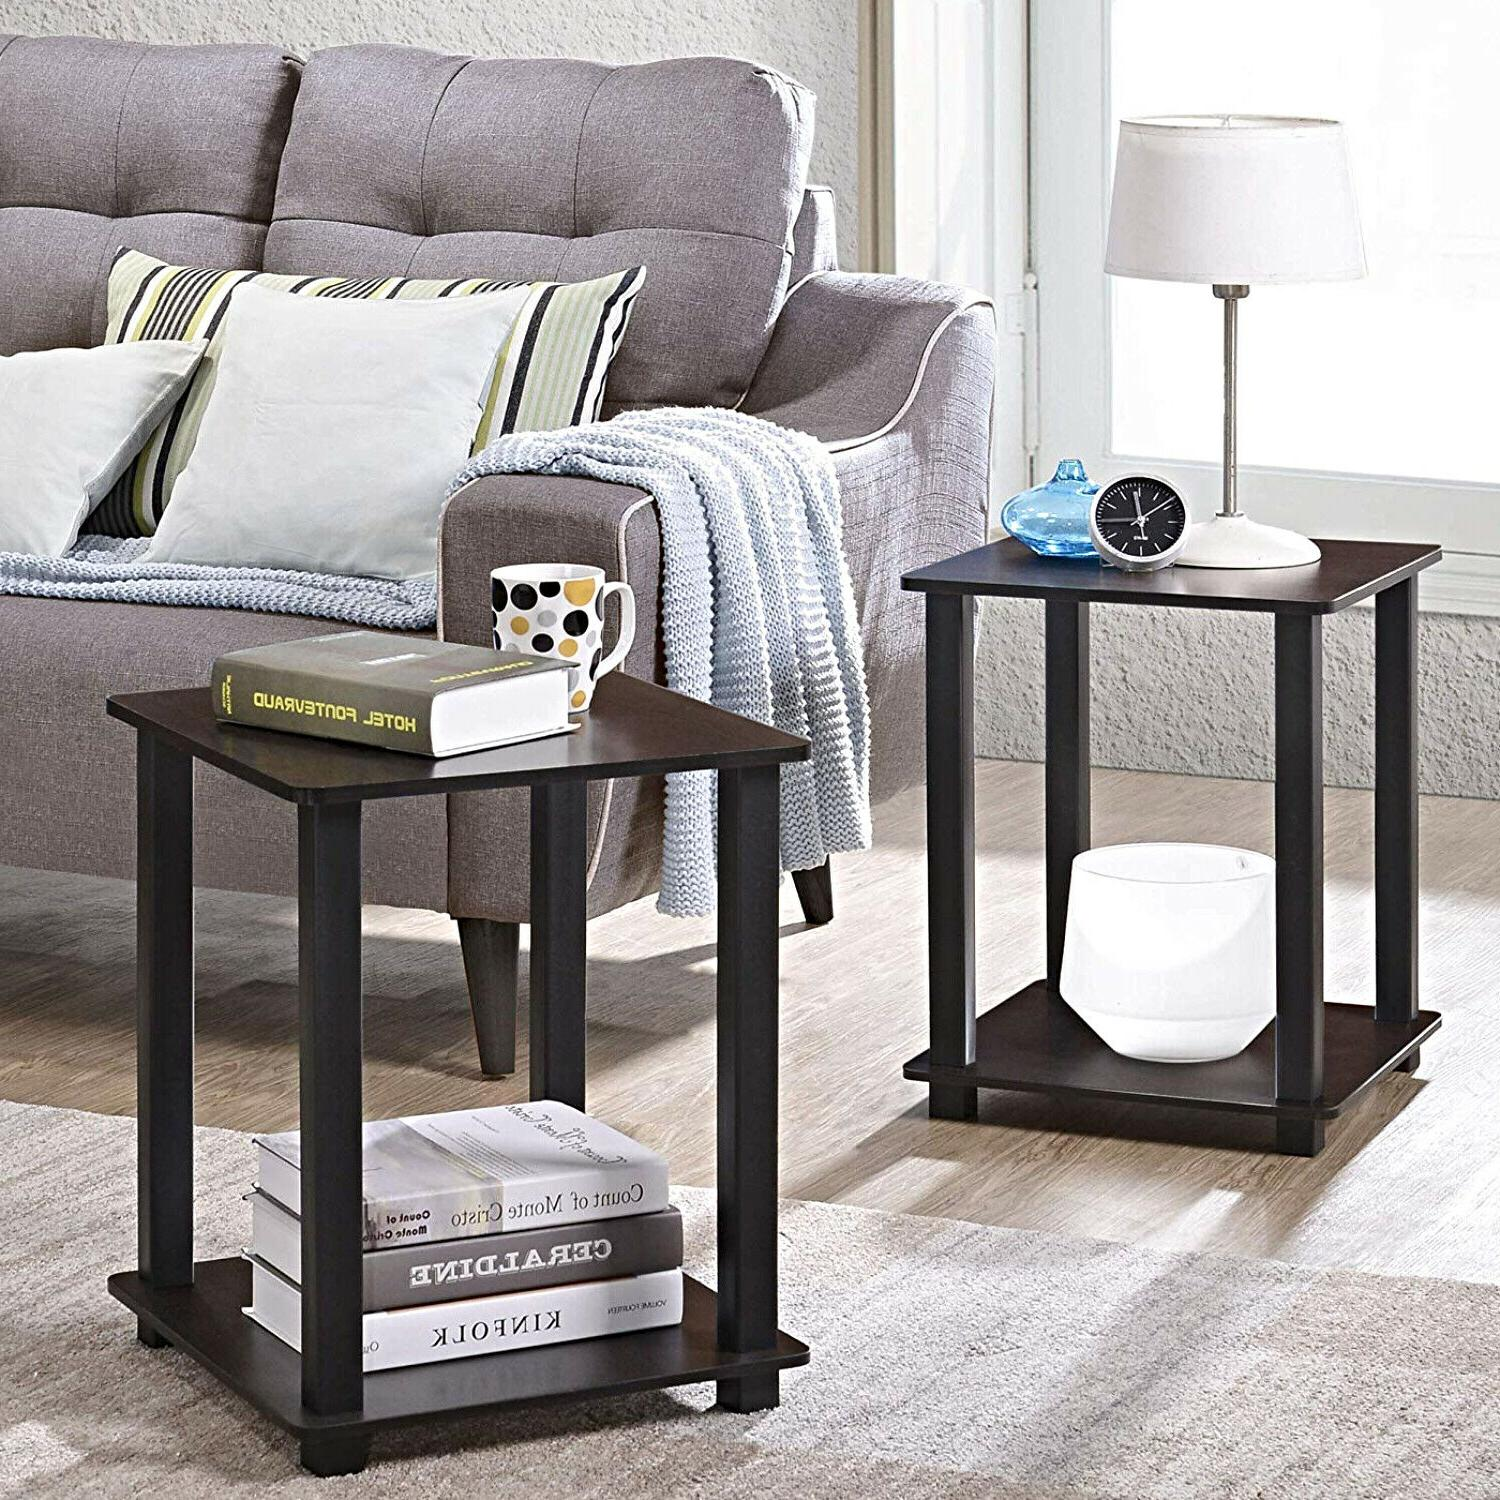 wooden end table set of 2 night